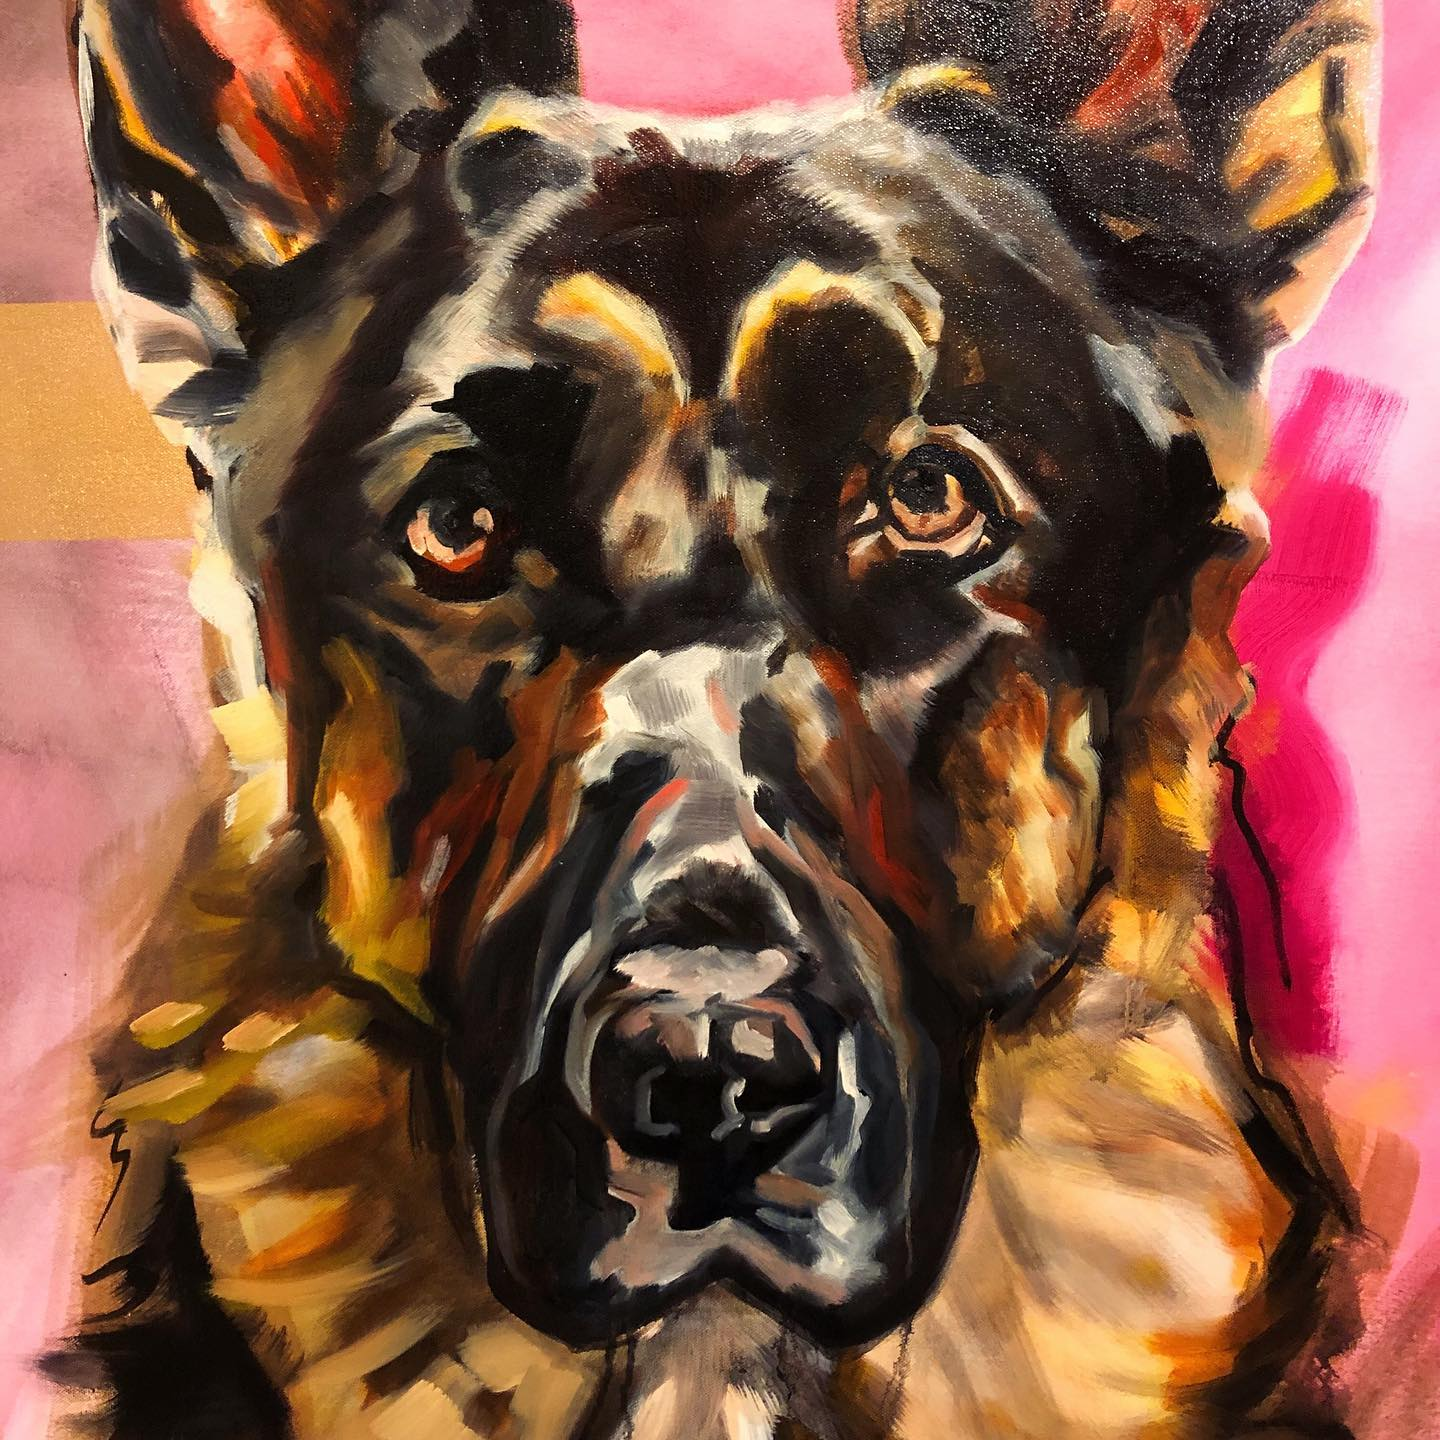 Dog Portraits - Accepting commissions of all shapes and sizes. Get in touch via the contact page to get your custom piece!